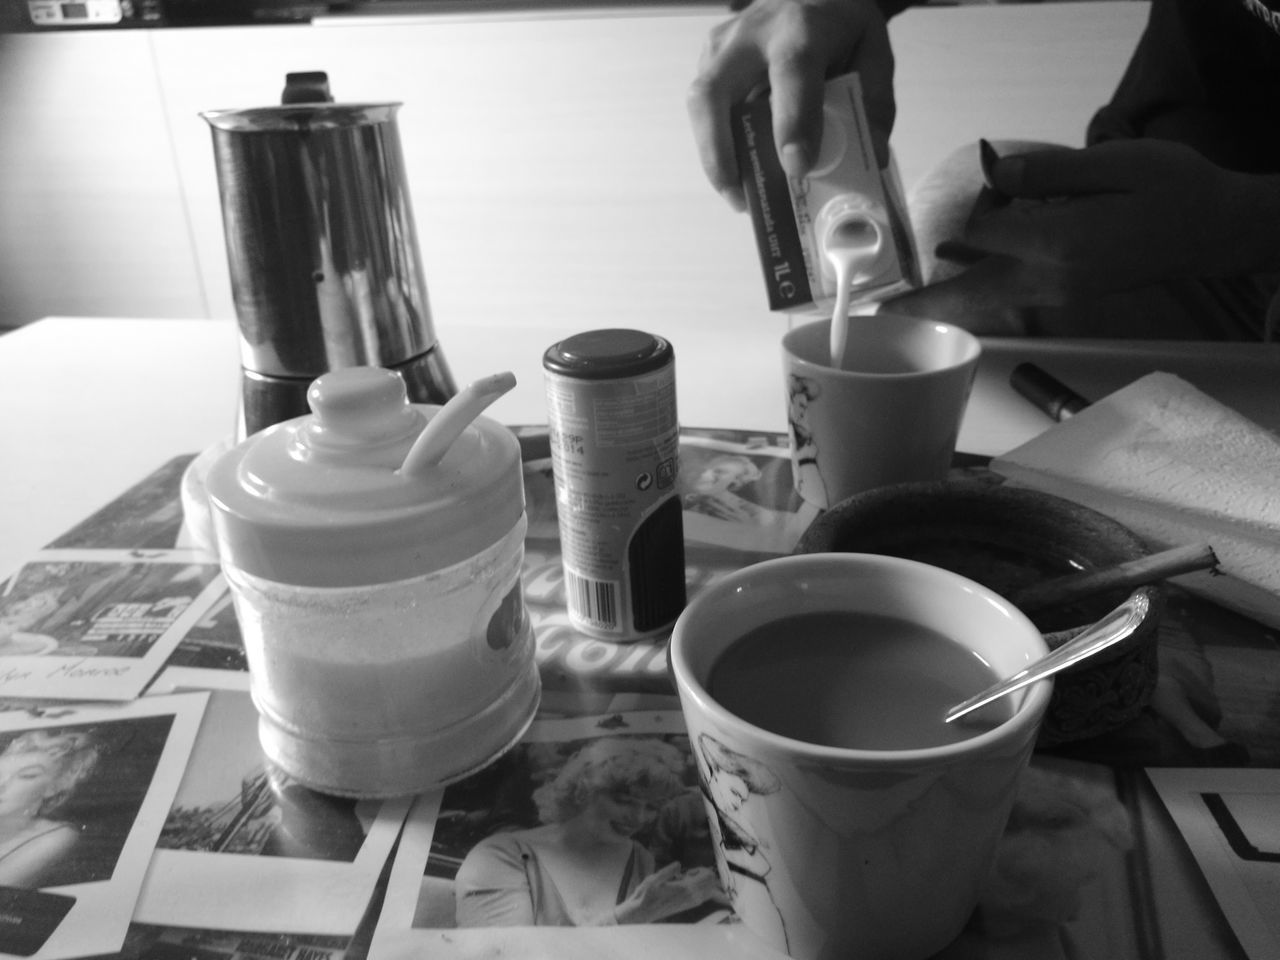 Monochrome Photography Black And White Art And Craft Paintbrush Pottery Business Finance And Industry Clay Indoors  Paint Can Horizontal No People Working Close-up Workshop Mixing Day Coffee Time